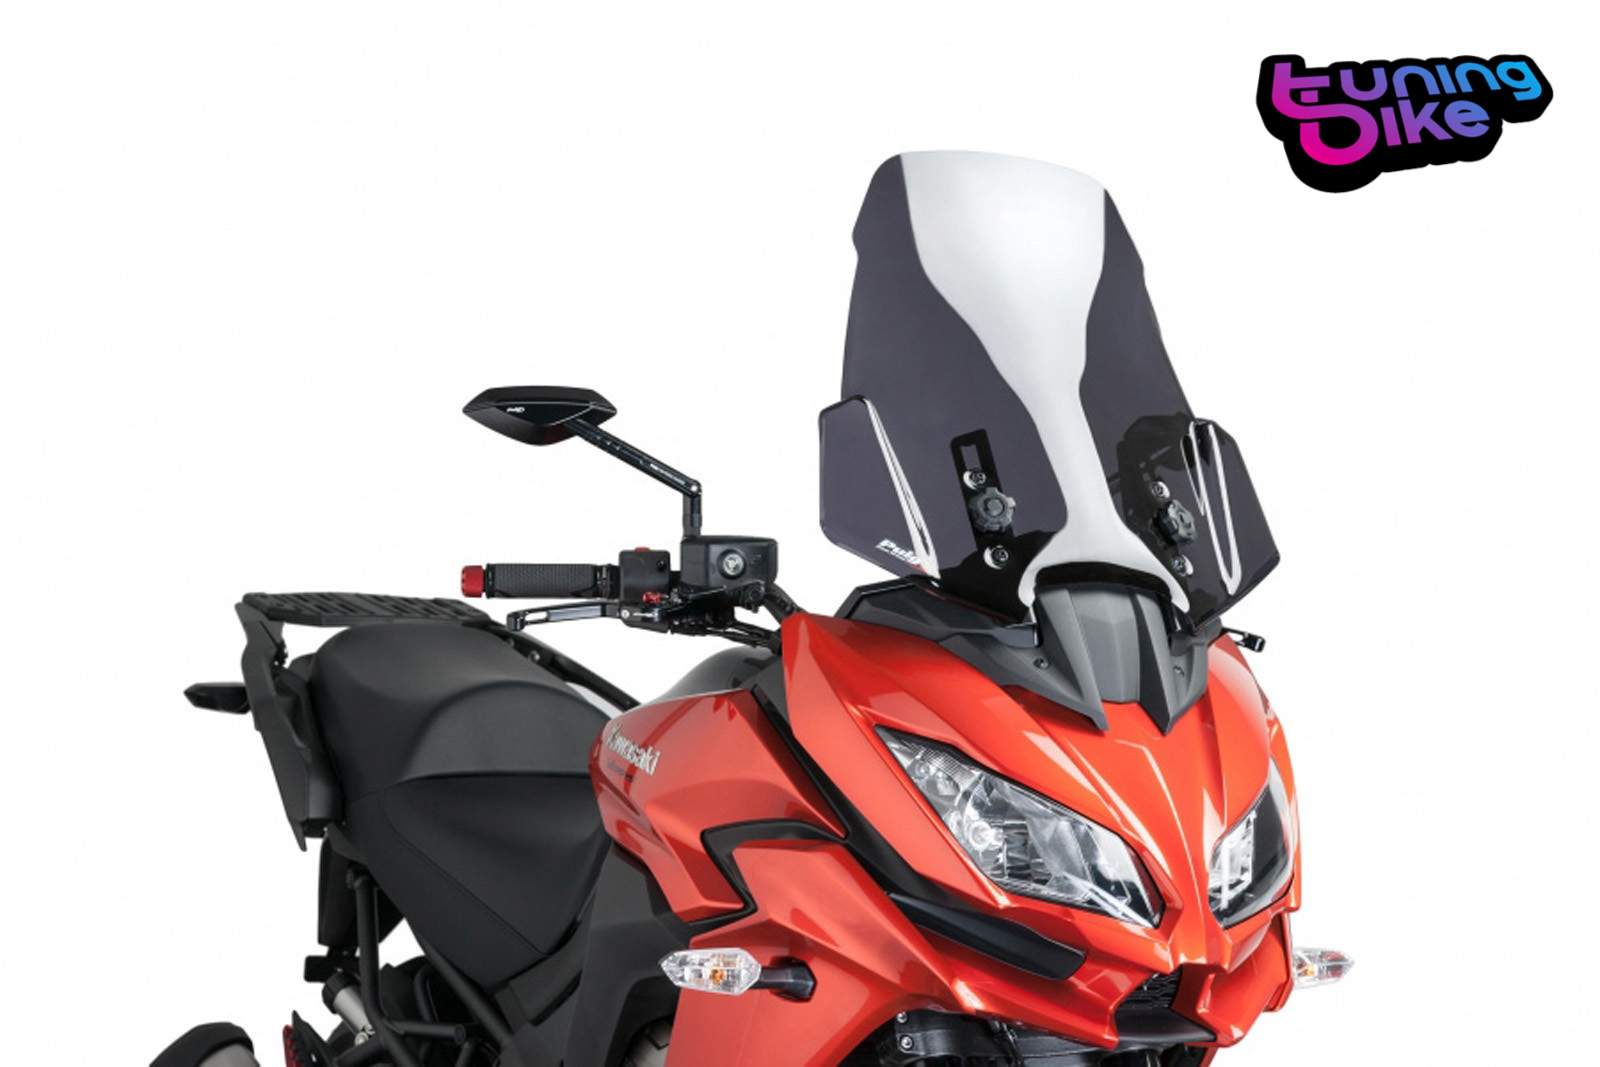 bulle touring puig kawasaki versys 1000 2016 fume fonce ebay. Black Bedroom Furniture Sets. Home Design Ideas